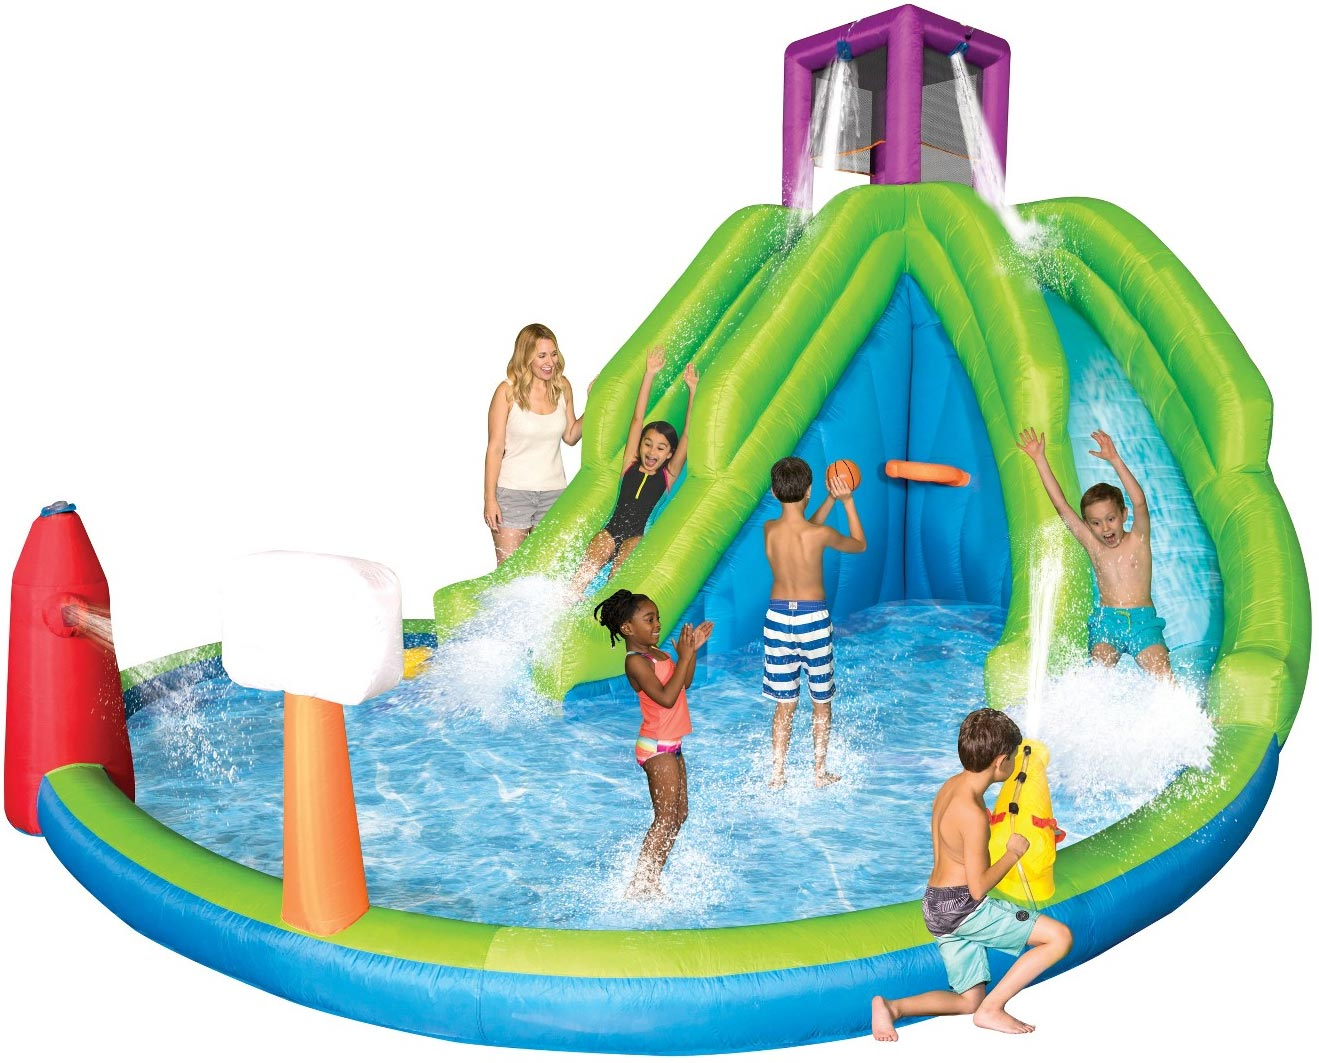 Backyard Waterslide backyard water slide park & splash pool – geekalerts